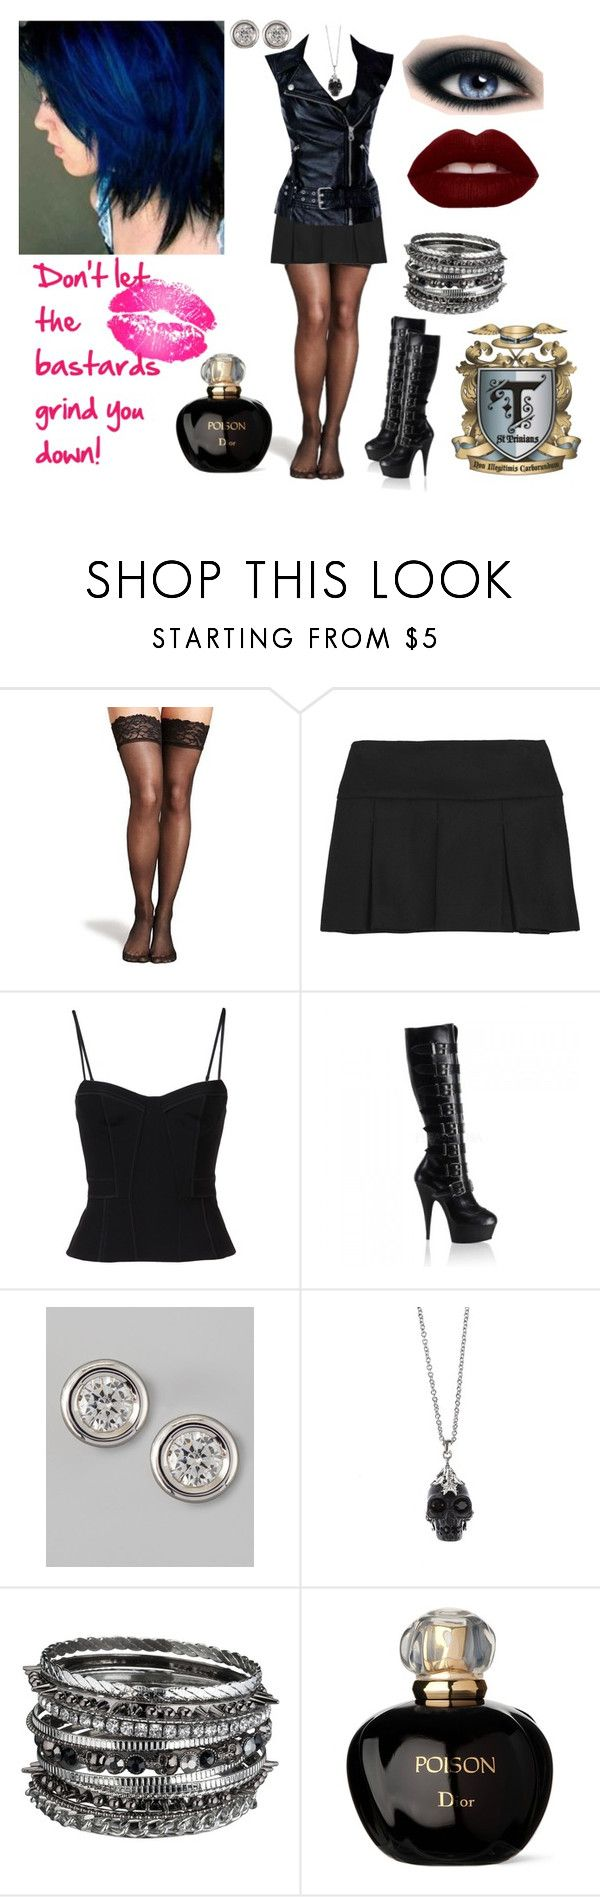 """""""Ruby Stark, Out Of Uniform"""" by darkess93 ❤ liked on Polyvore featuring Marks & Spencer, Miu Miu, Alexander Wang, Miss Sixty, Roberto Coin, Alexander McQueen and Christian Dior"""